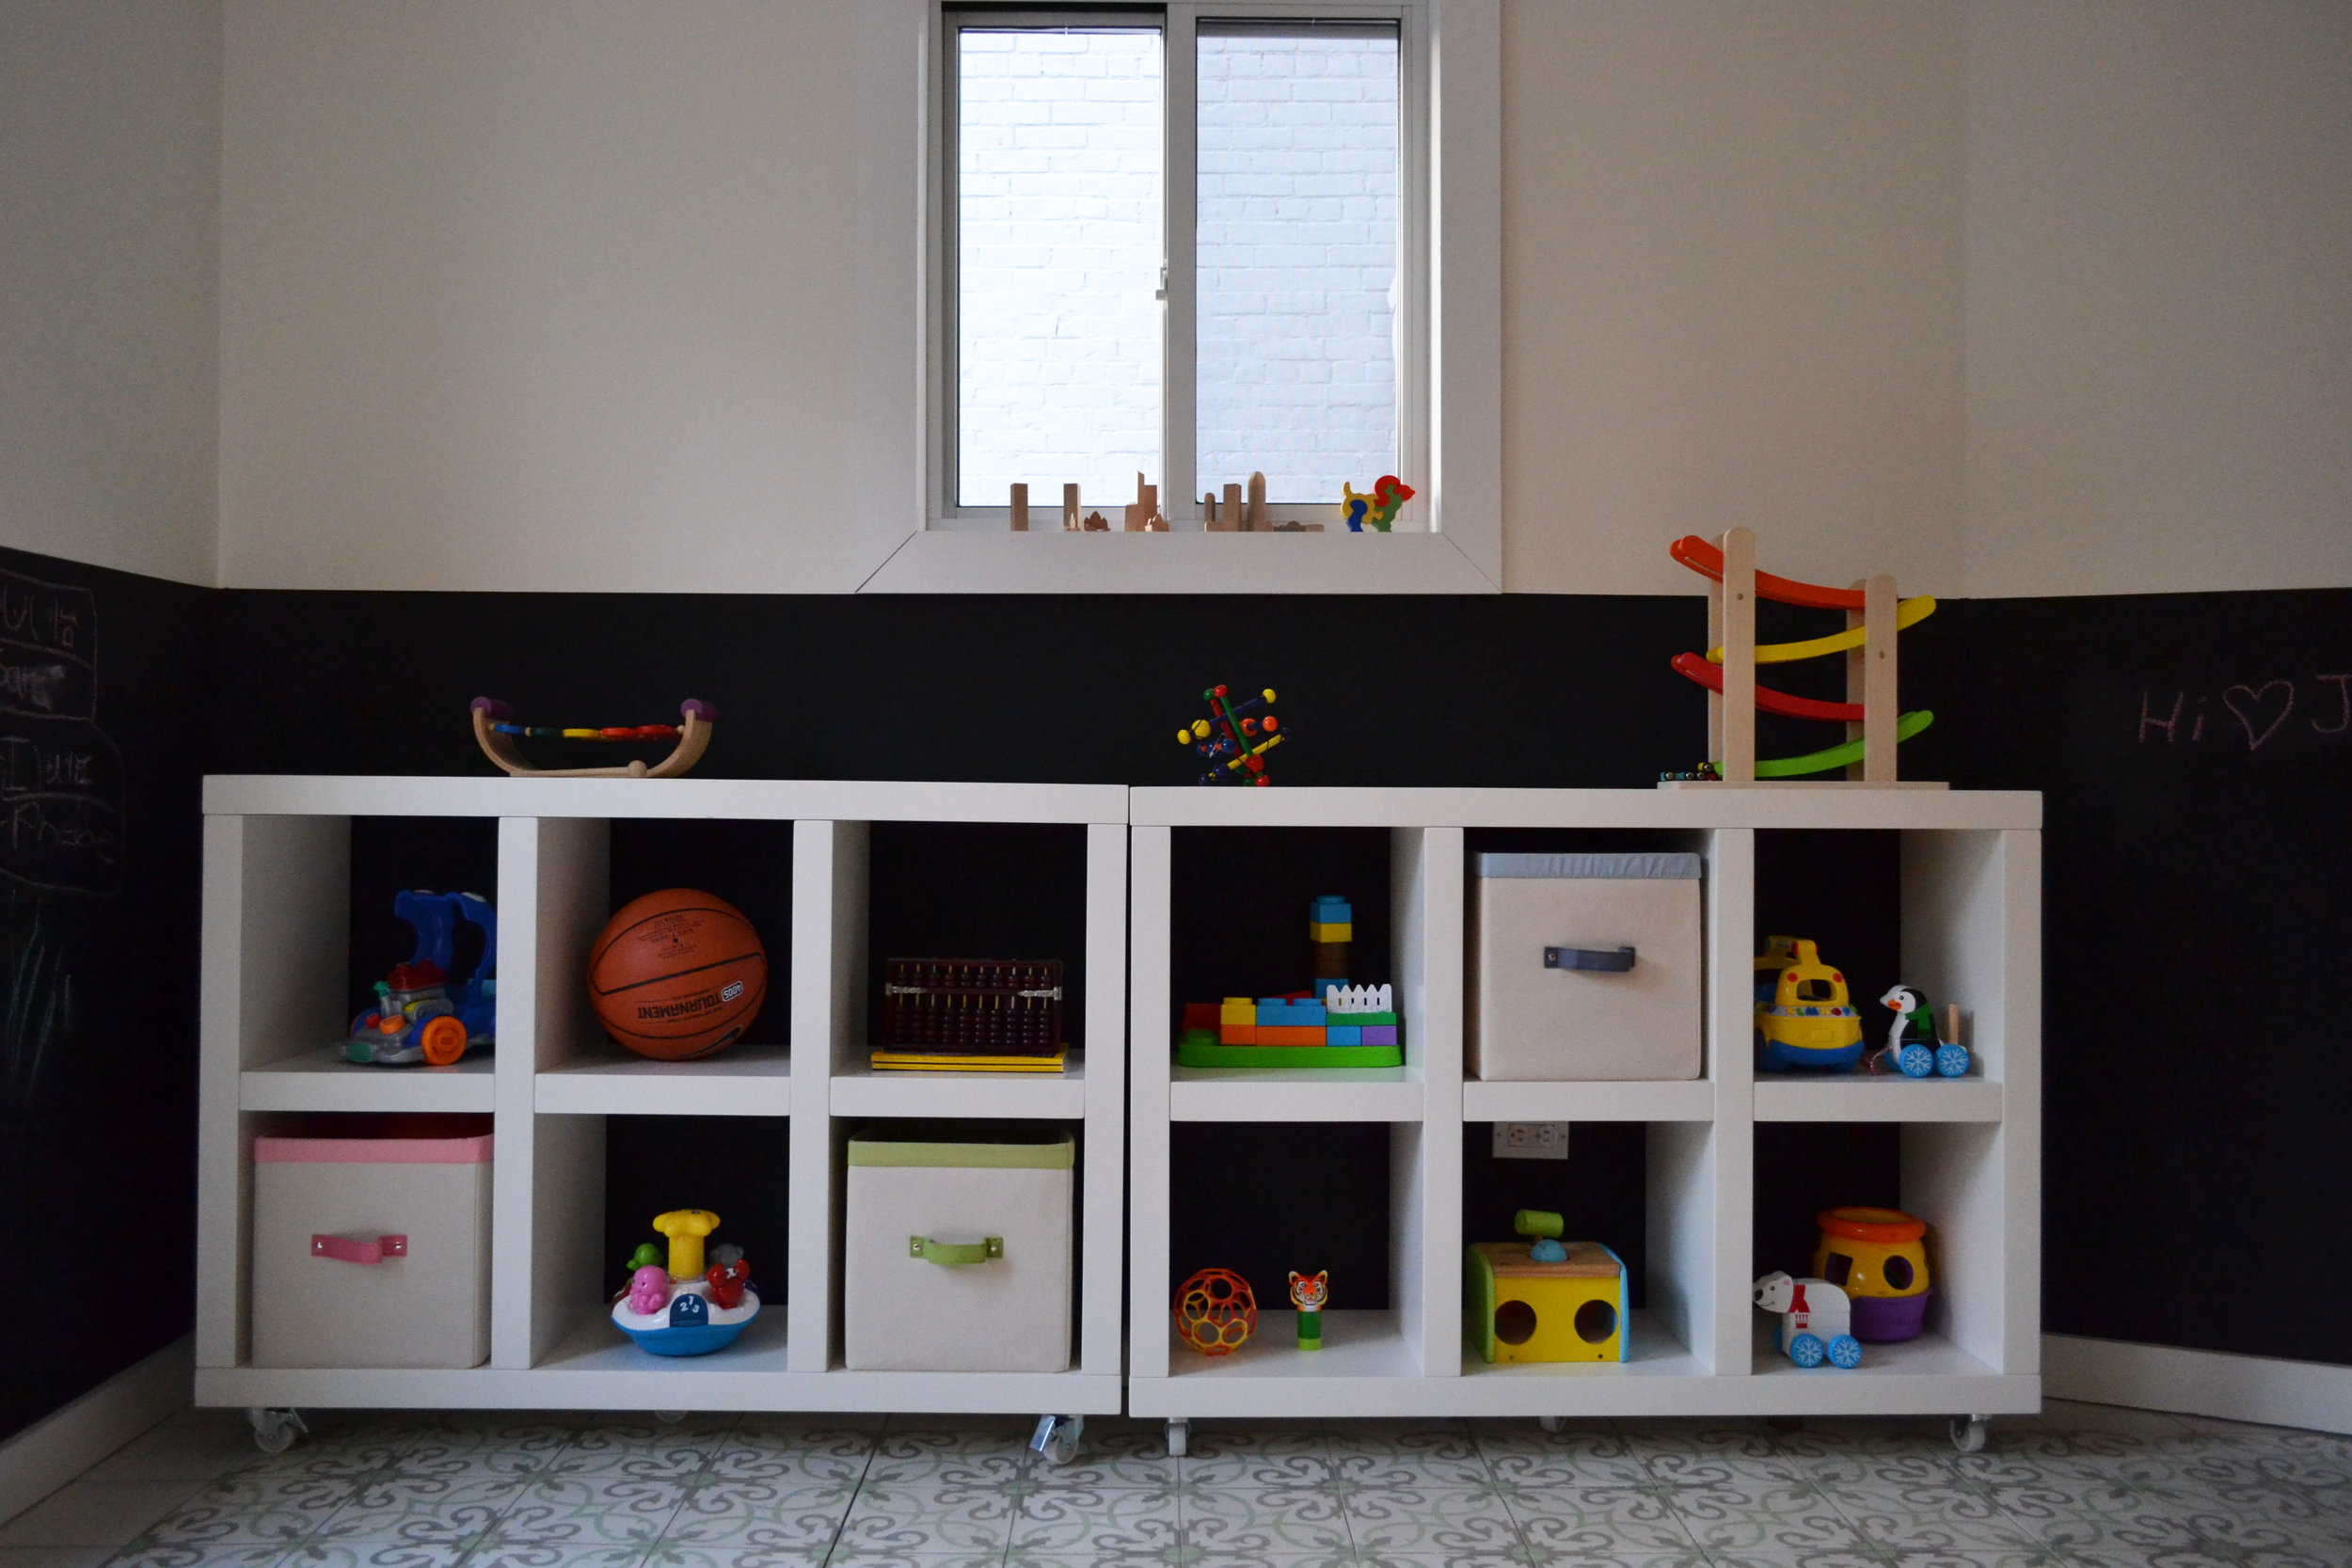 Organized-Kids-Room-Wall-Floor-Custom-Cubby-JMorrisDesign-Brooklyn-Interior-Designer.jpg